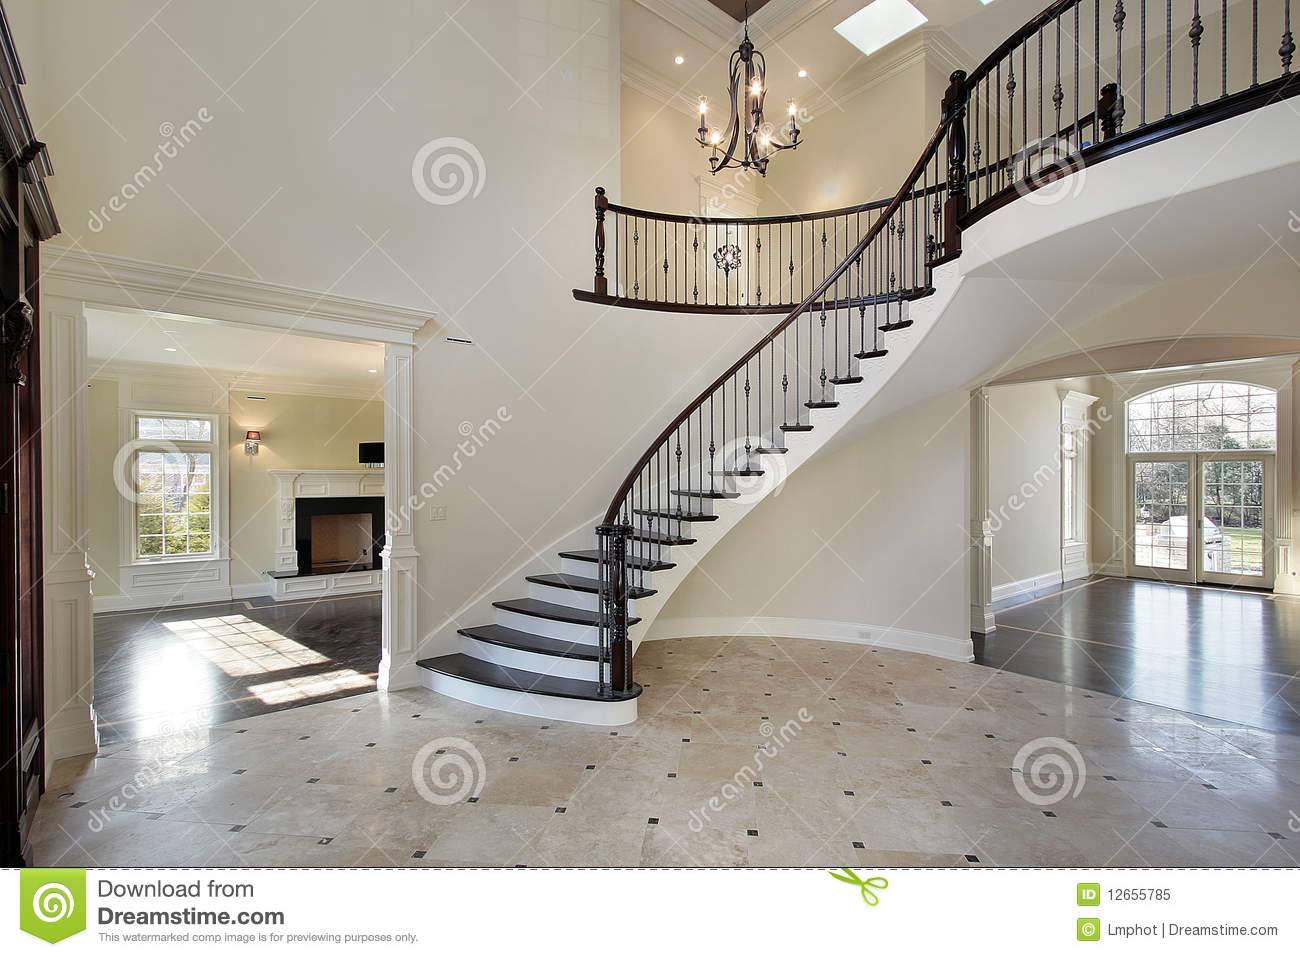 Foyer With Circular Staircase Royalty Free Stock Photo Image 12655785